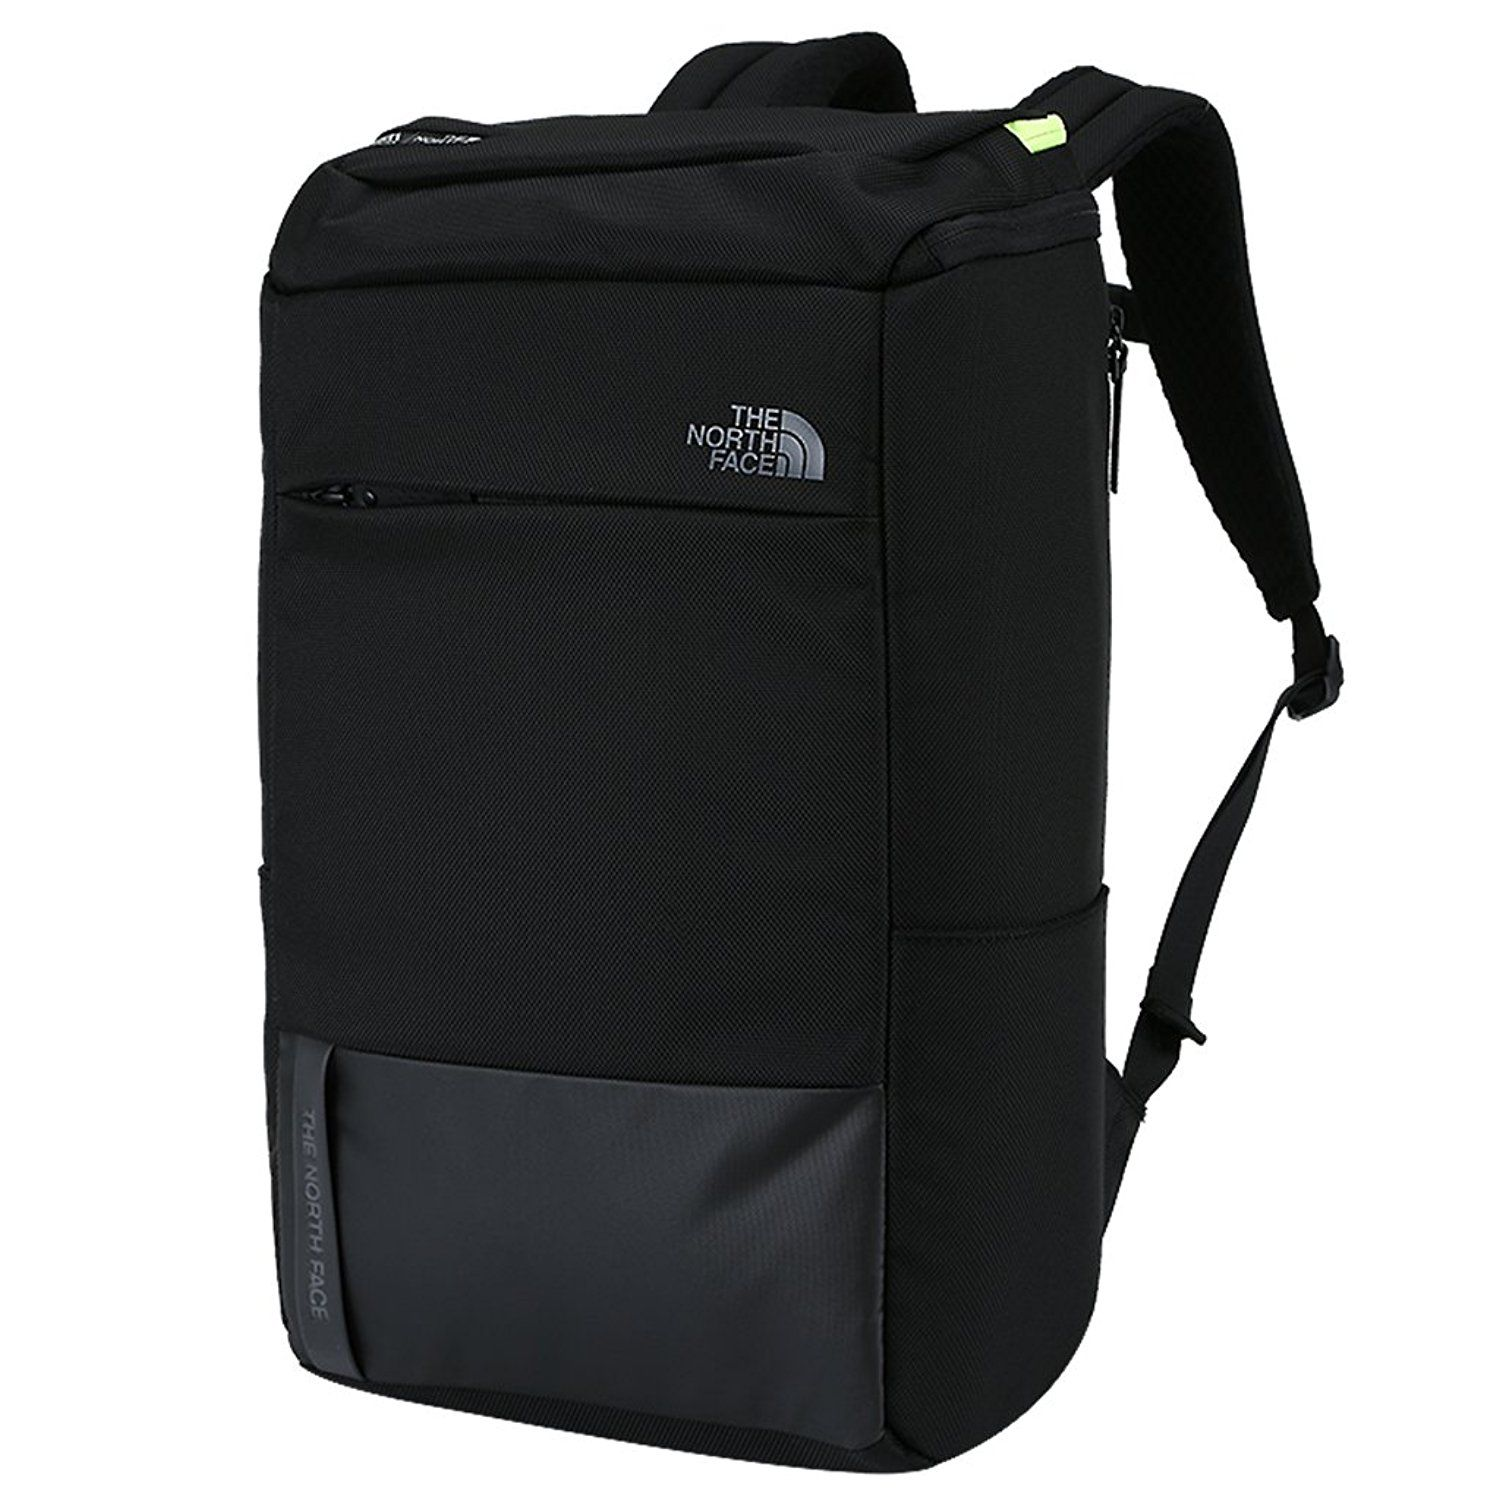 The North Face Fuse Box Outdoor Unisex Waterproof 30l Laptop Backpack